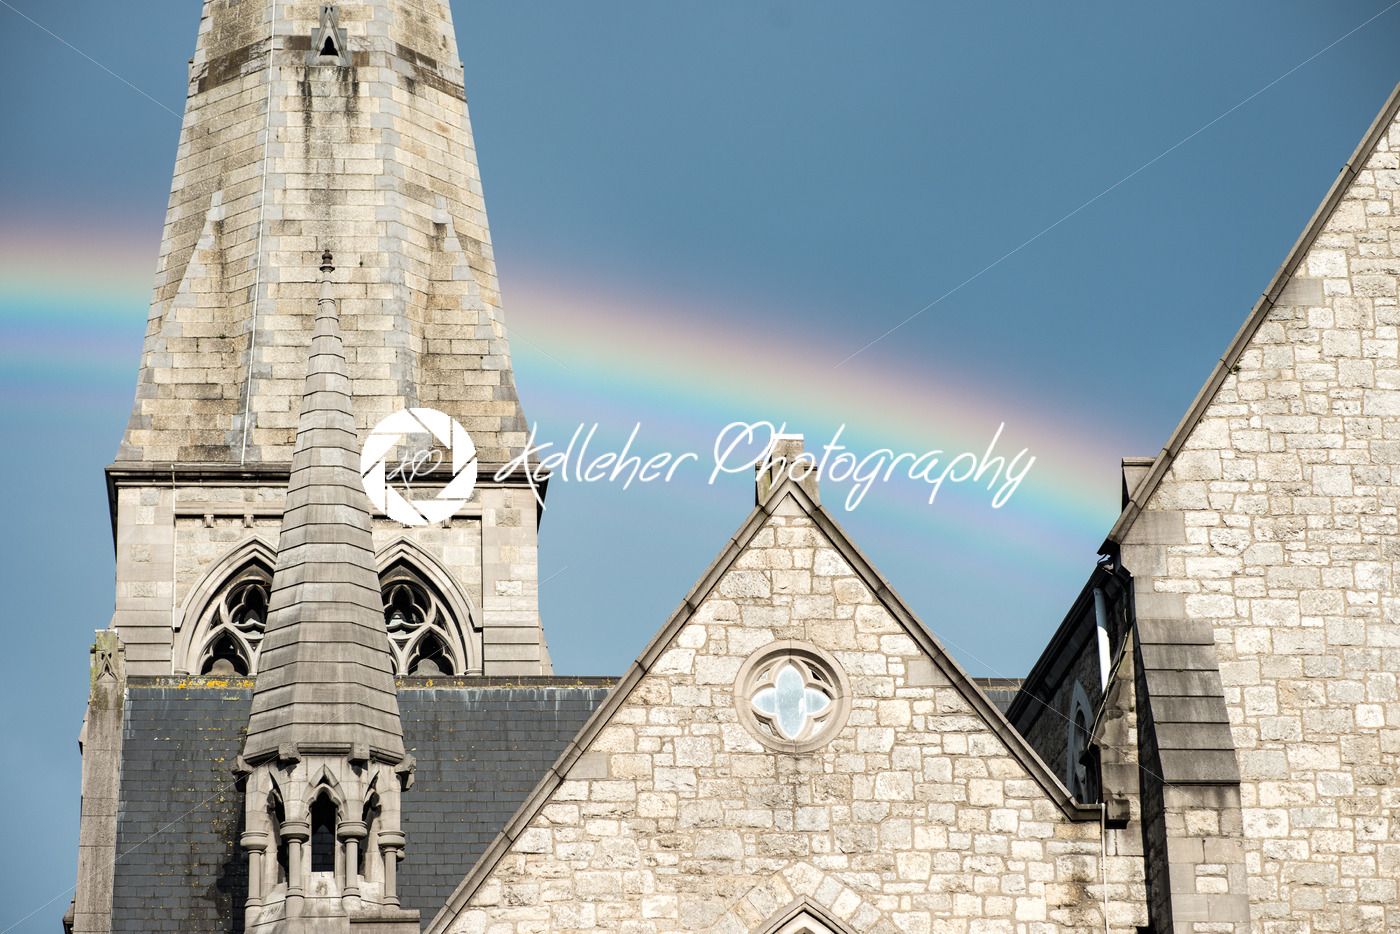 DUBLIN, IRELAND – AUGUST 31, 2017: City of Dublin Ireland - Kelleher Photography Store